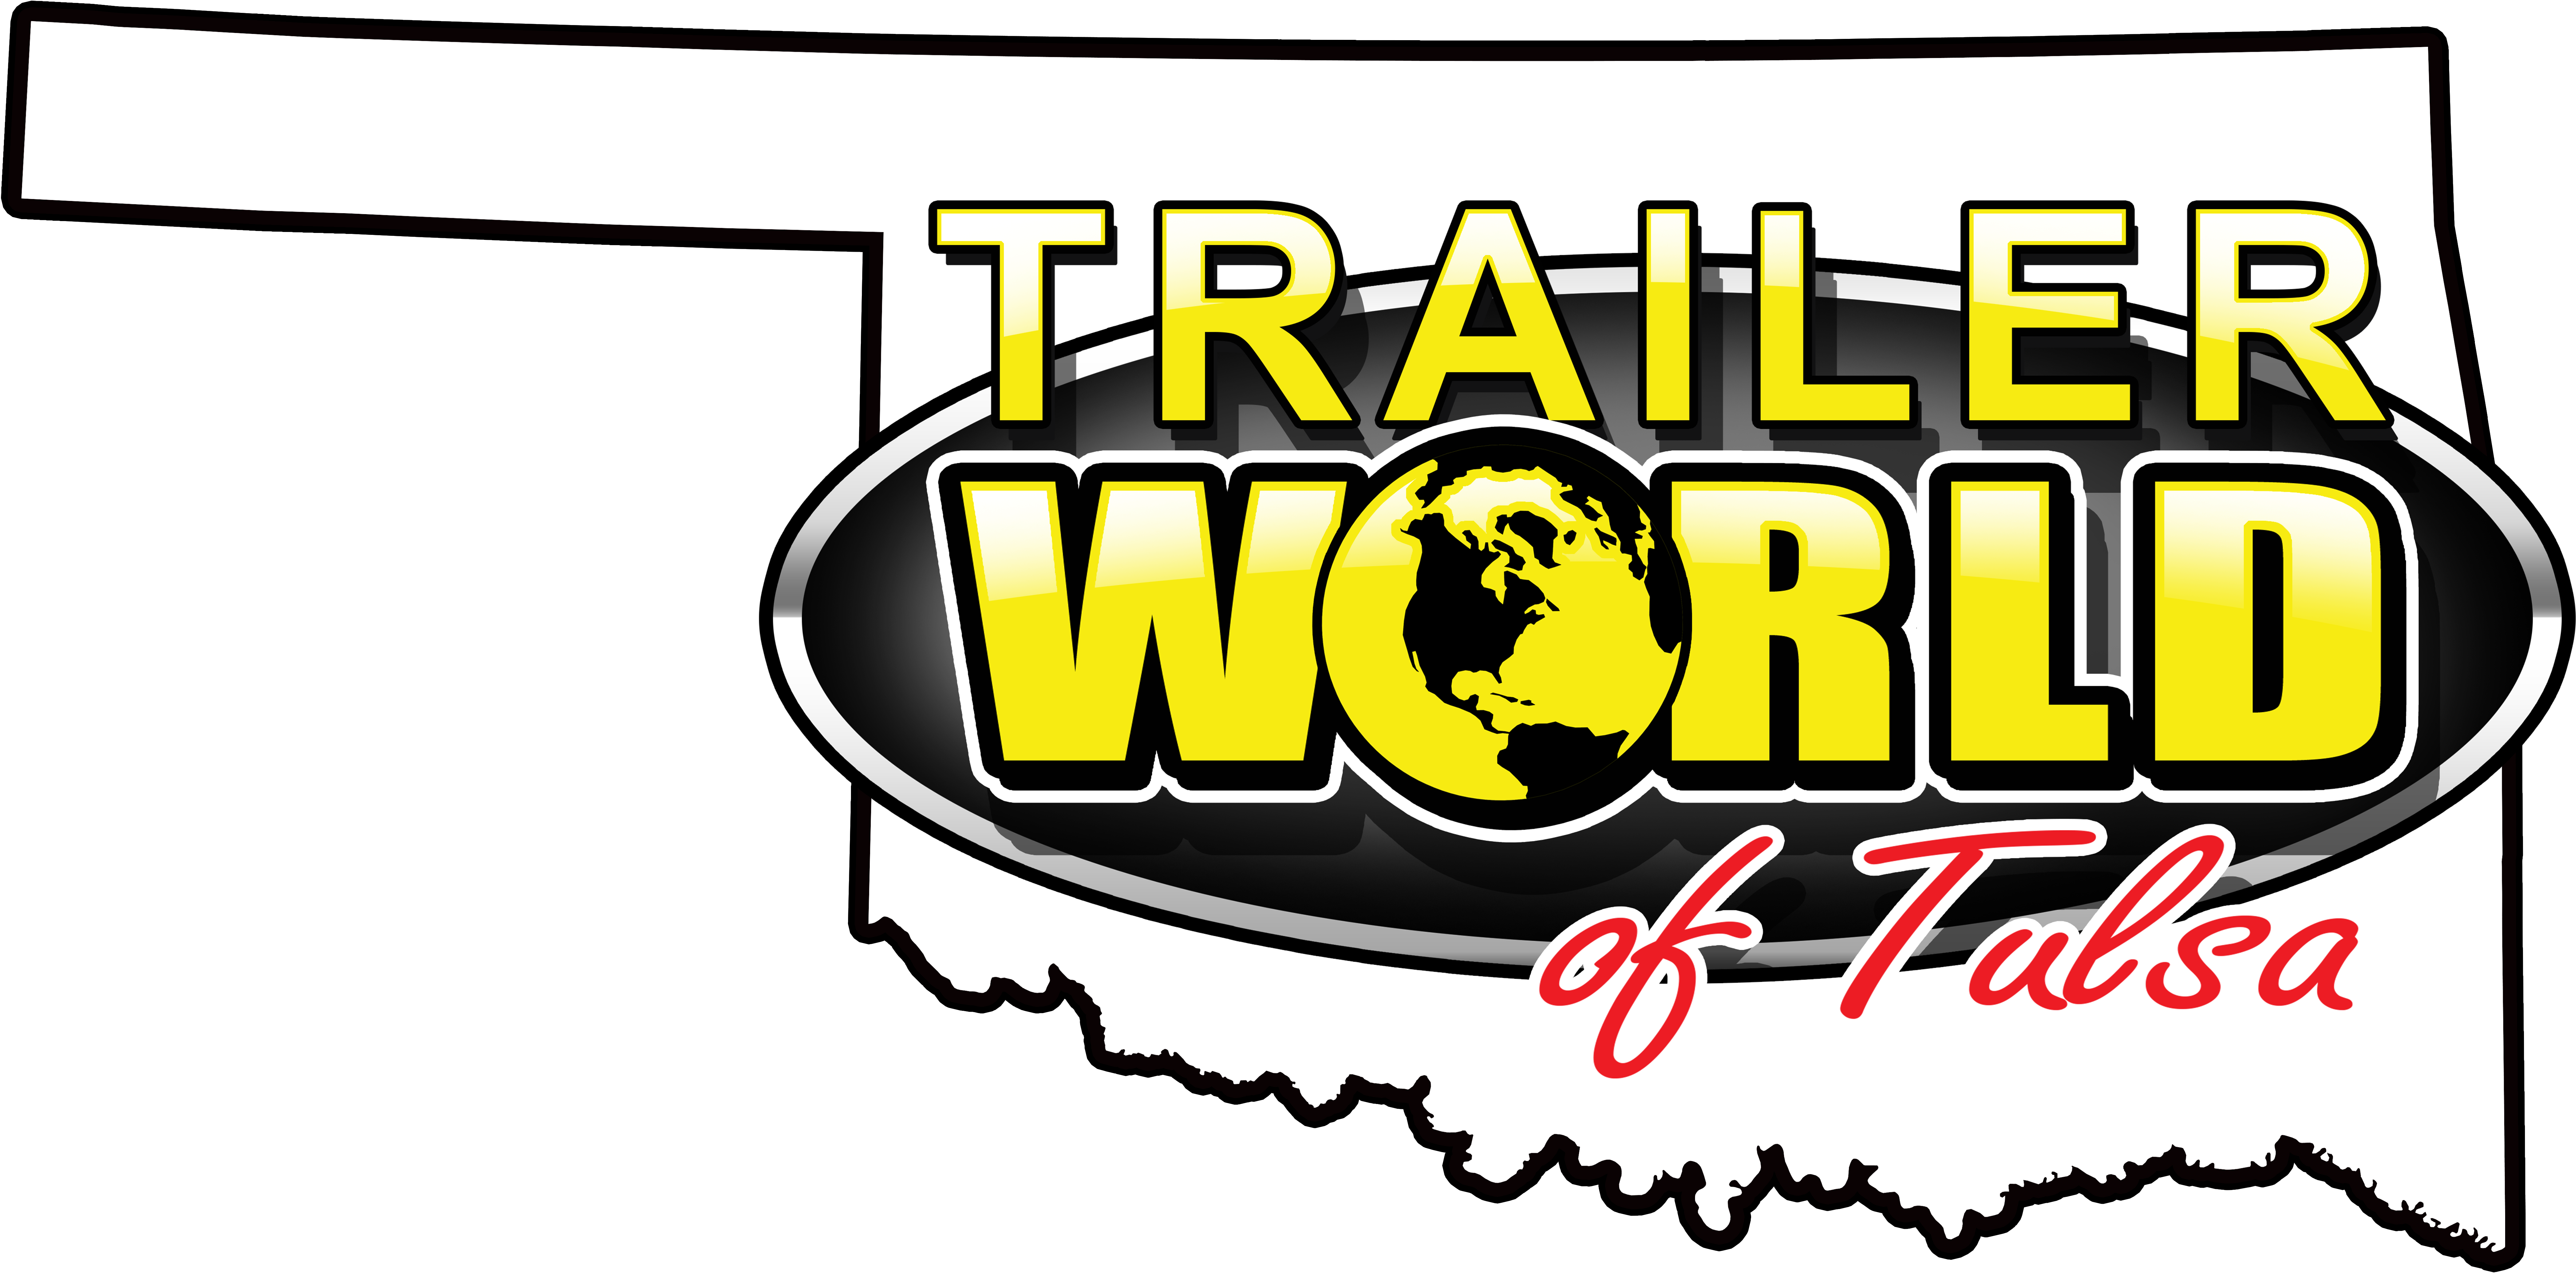 Trailer World of Tulsa